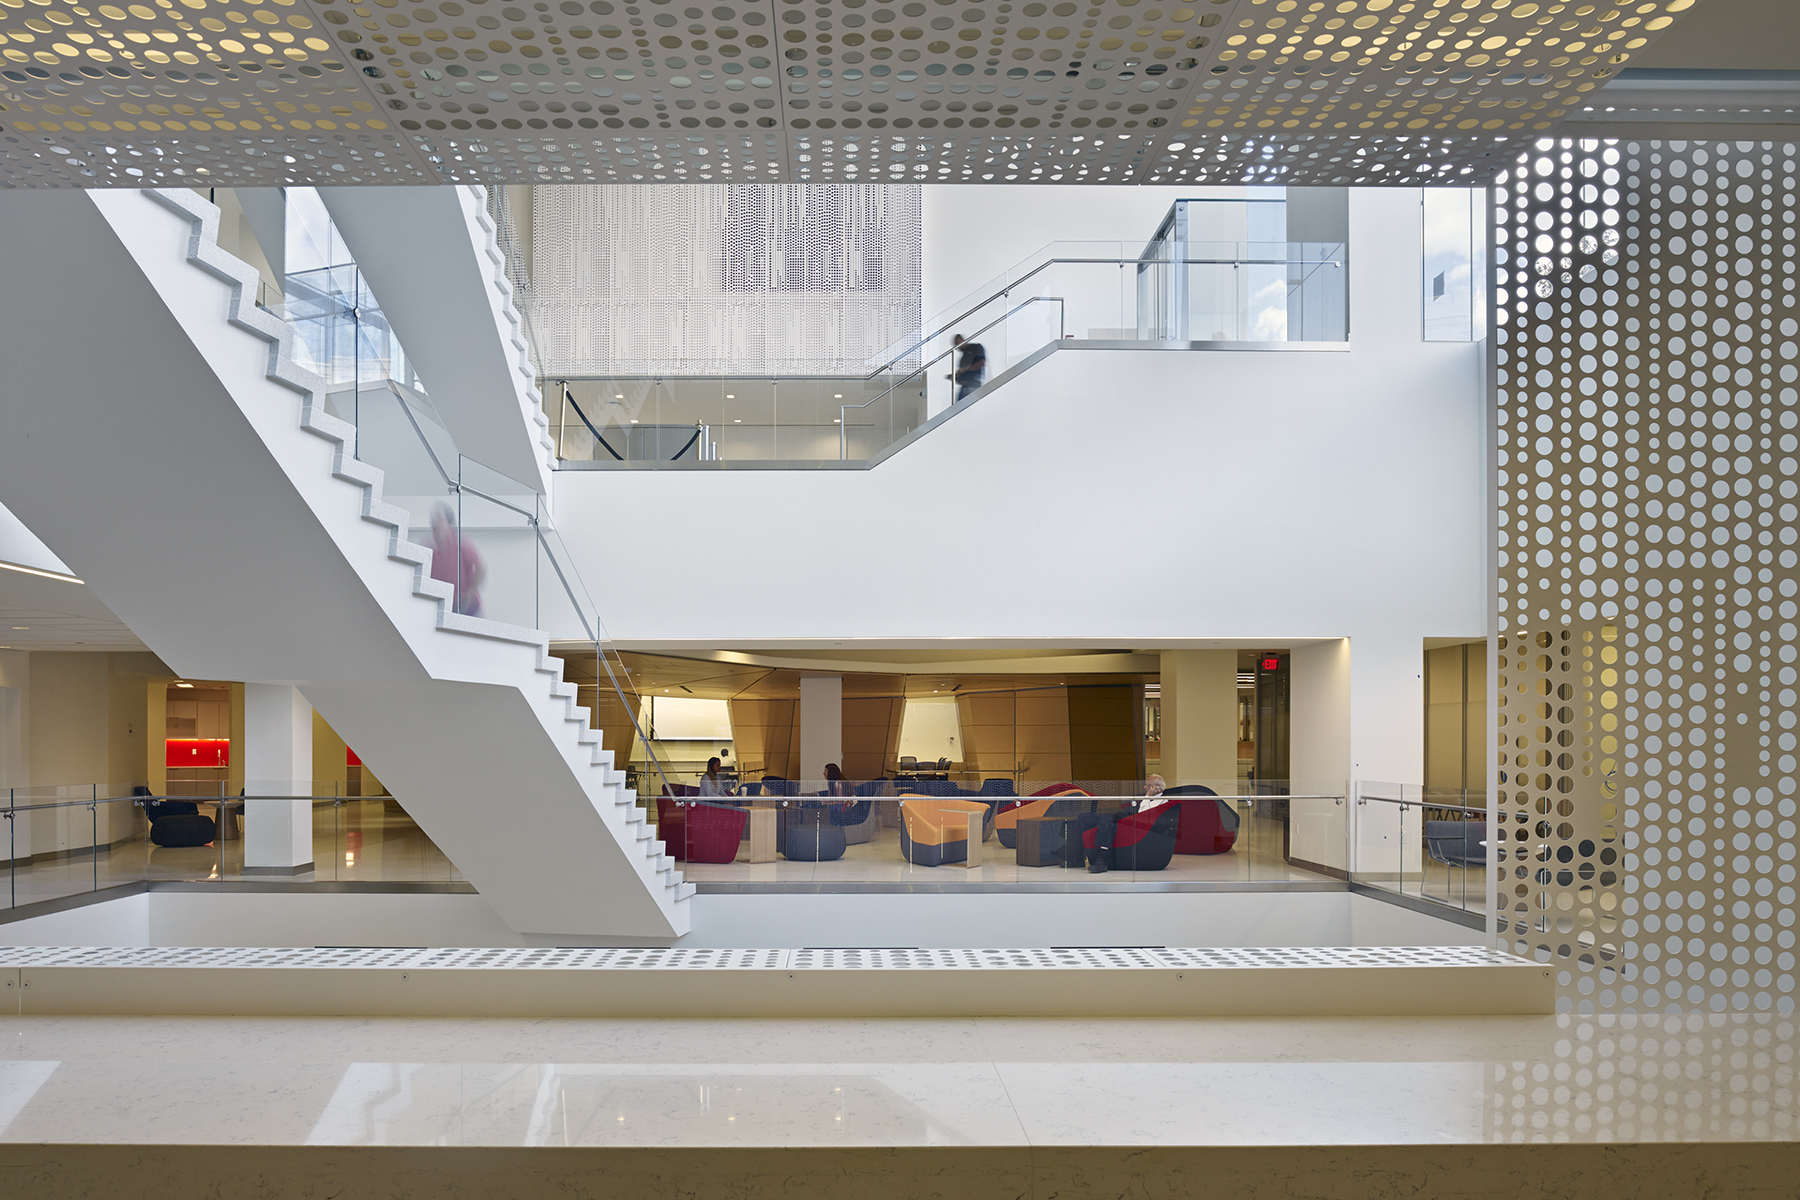 High Quality Georgetown University School Of Continuing Studies | Architect Magazine | Studios  Architecture, Education, Renovation/Remodel, Adaptive Reuse, ...